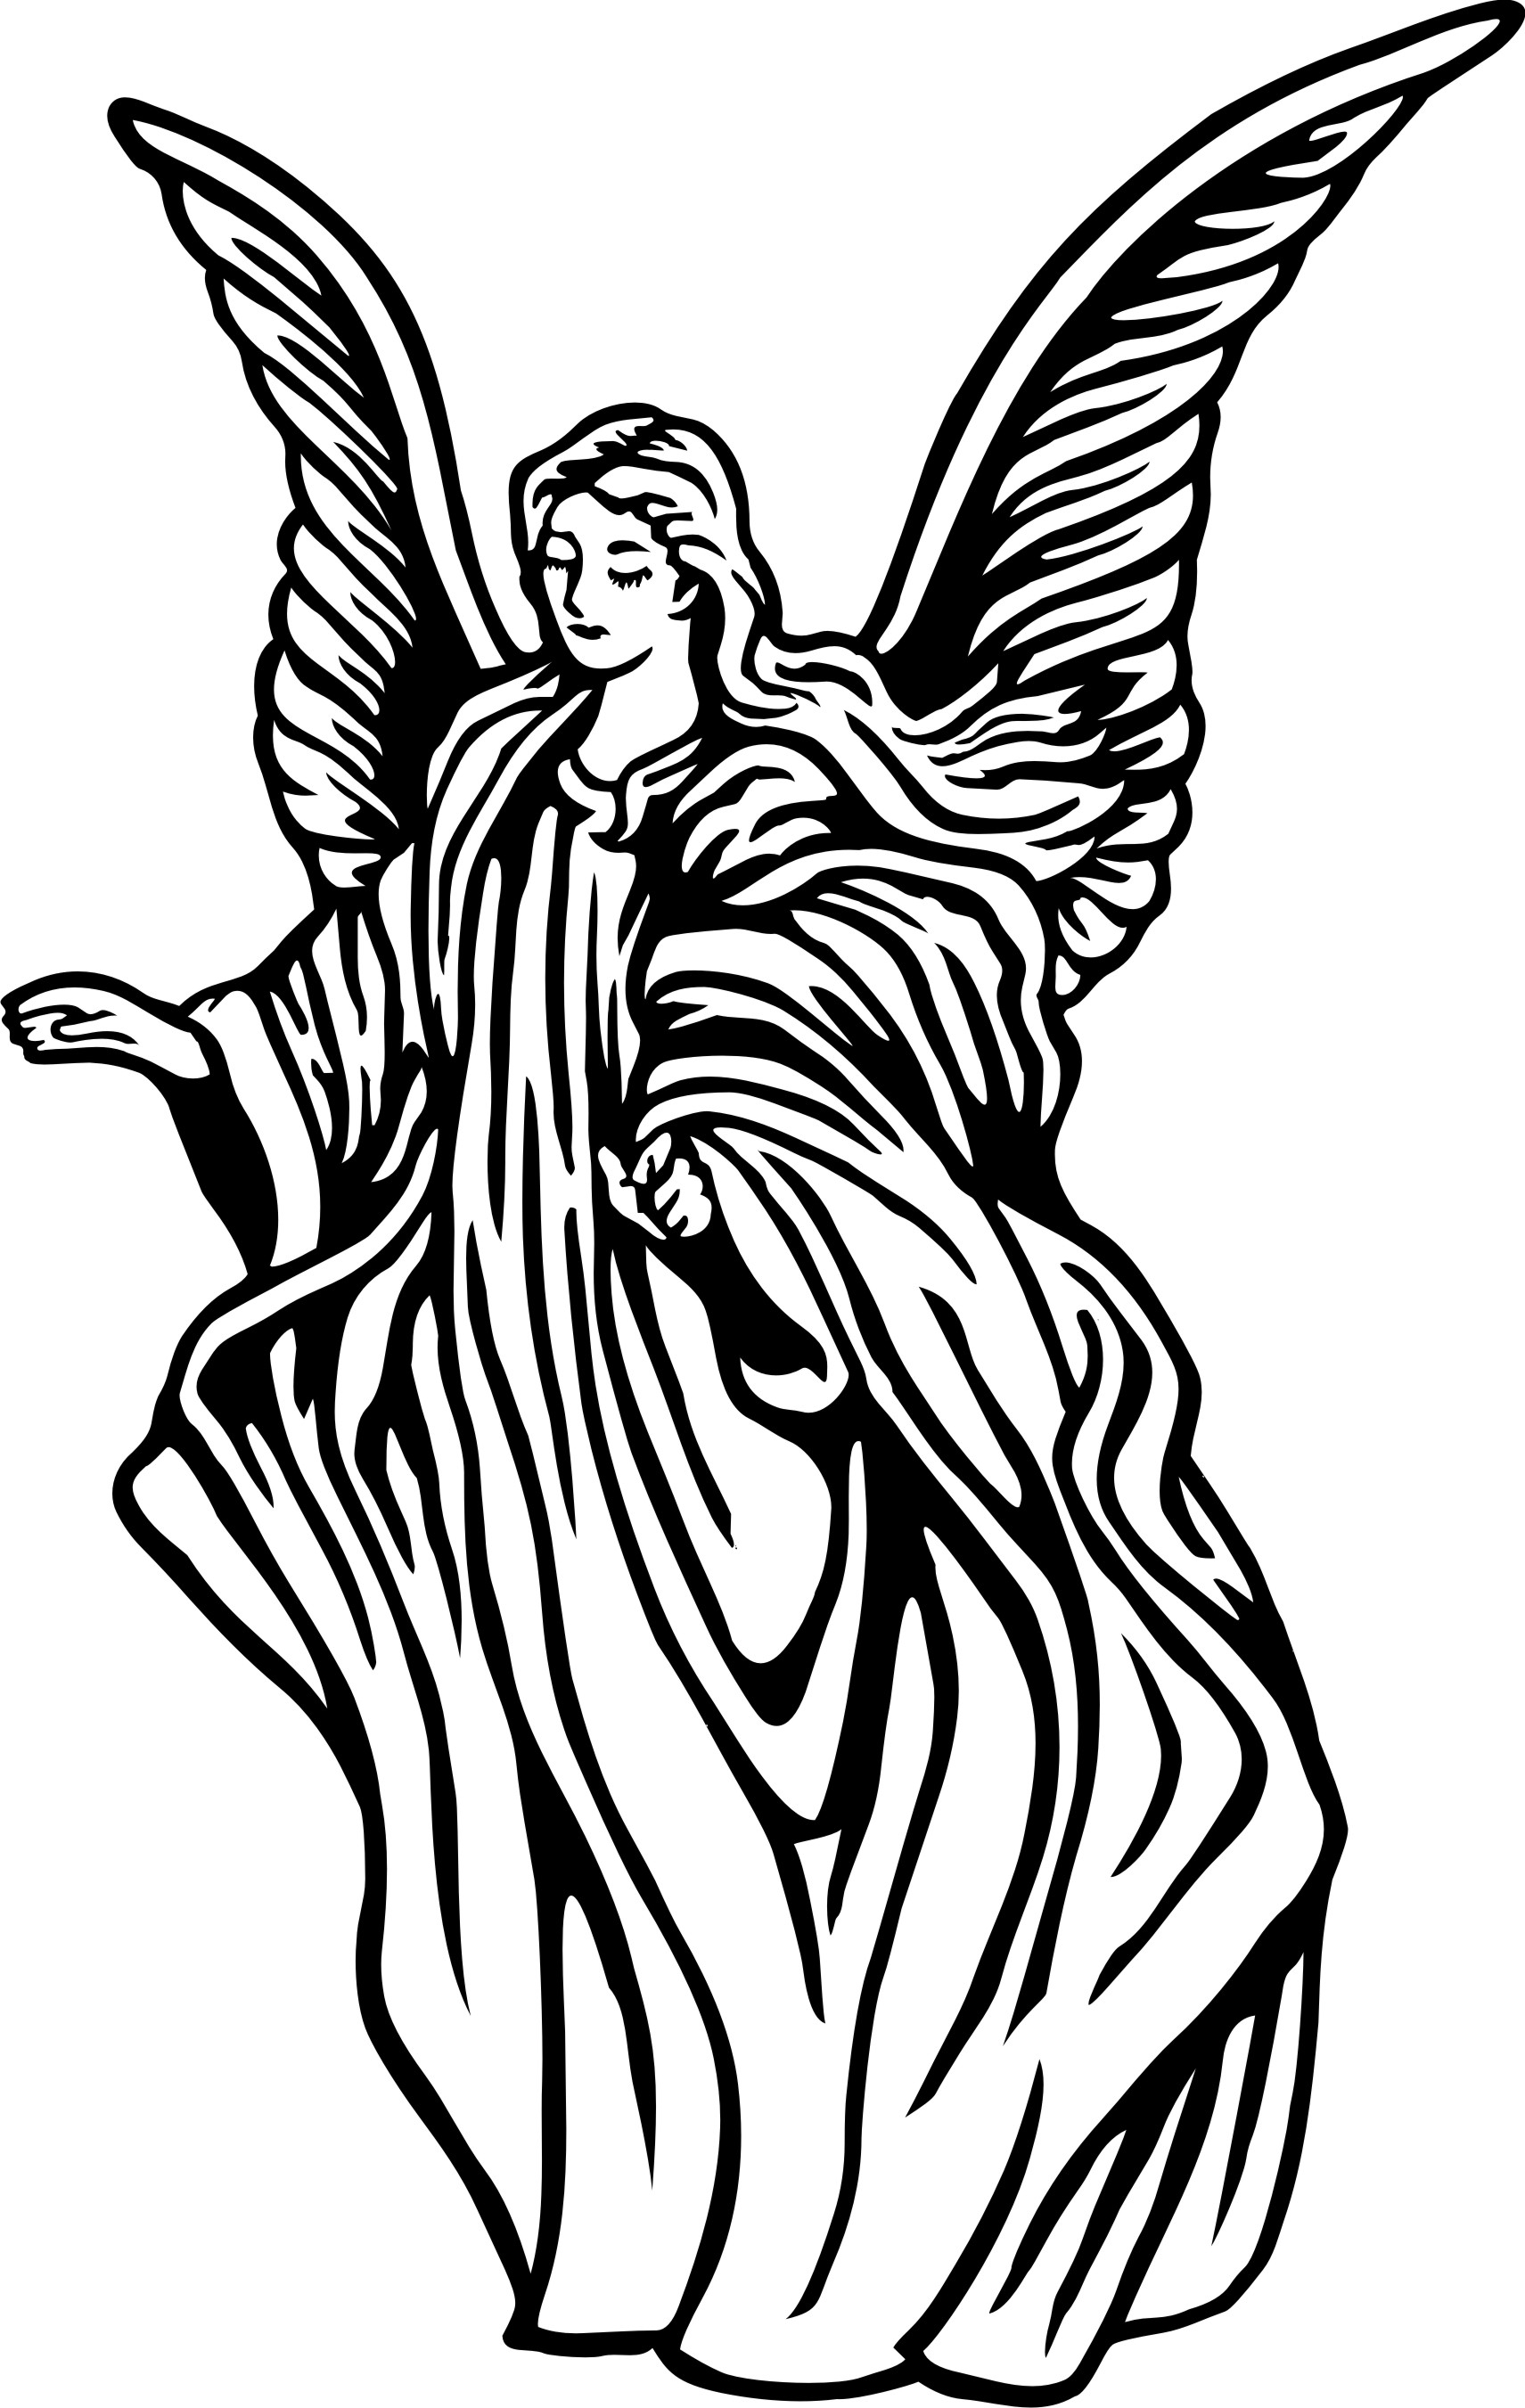 Angel drawing. Guardian angels drawings clipart